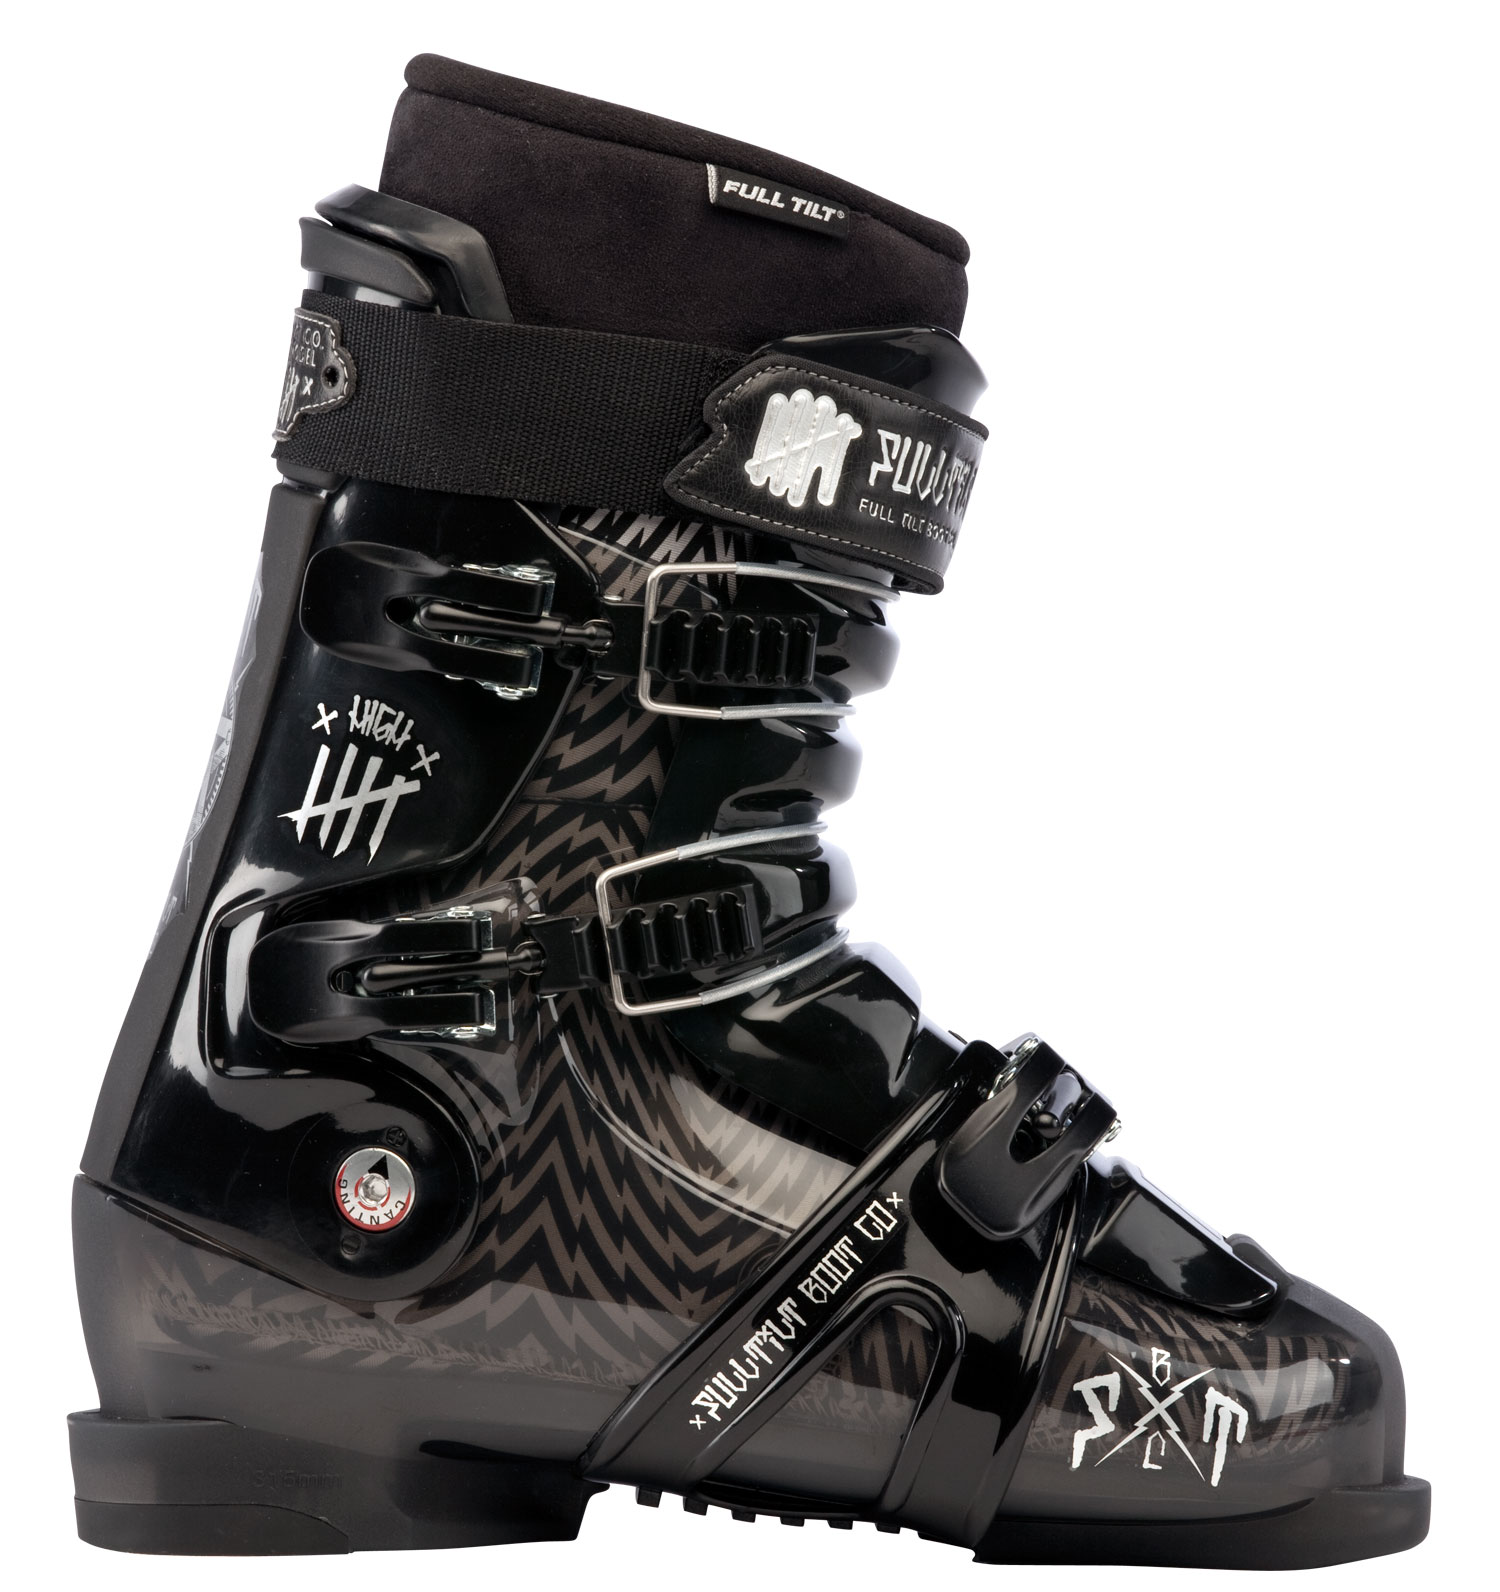 Ski Key Features of the Full Tilt High Five Ski Boots: hell: FTI Influence Last Width: 102mm Tongue (10 = Stiffest Flex): Interchangeable 7 Flex / 5 Ribs Weight g (sizes M 27, W 25): 2025 Sole: Replaceable Rubber Small Heel Buckles: 3 Aluminum Macro Ladder + Micro Closure System: 2 Upper Cables 1 Lower Wrap Strap Forward Cant Adjustment: n/a Lateral Cant Adjustment: 3mm Toe / Heal Height: 18.5mm / 34mm Cuff: Free Hinging Quickfit Liner Model: PRO Open Cell Foam: 4mm Soft Density Intuition Foam: 2mm Regular Density Intuition Foam: High Density Intuition Foam: 7mm Moldable Foam: Intuition Powerwrap: Powerwrap J-Bar: J-Bar Wide Toe: Wide Toe - $349.95